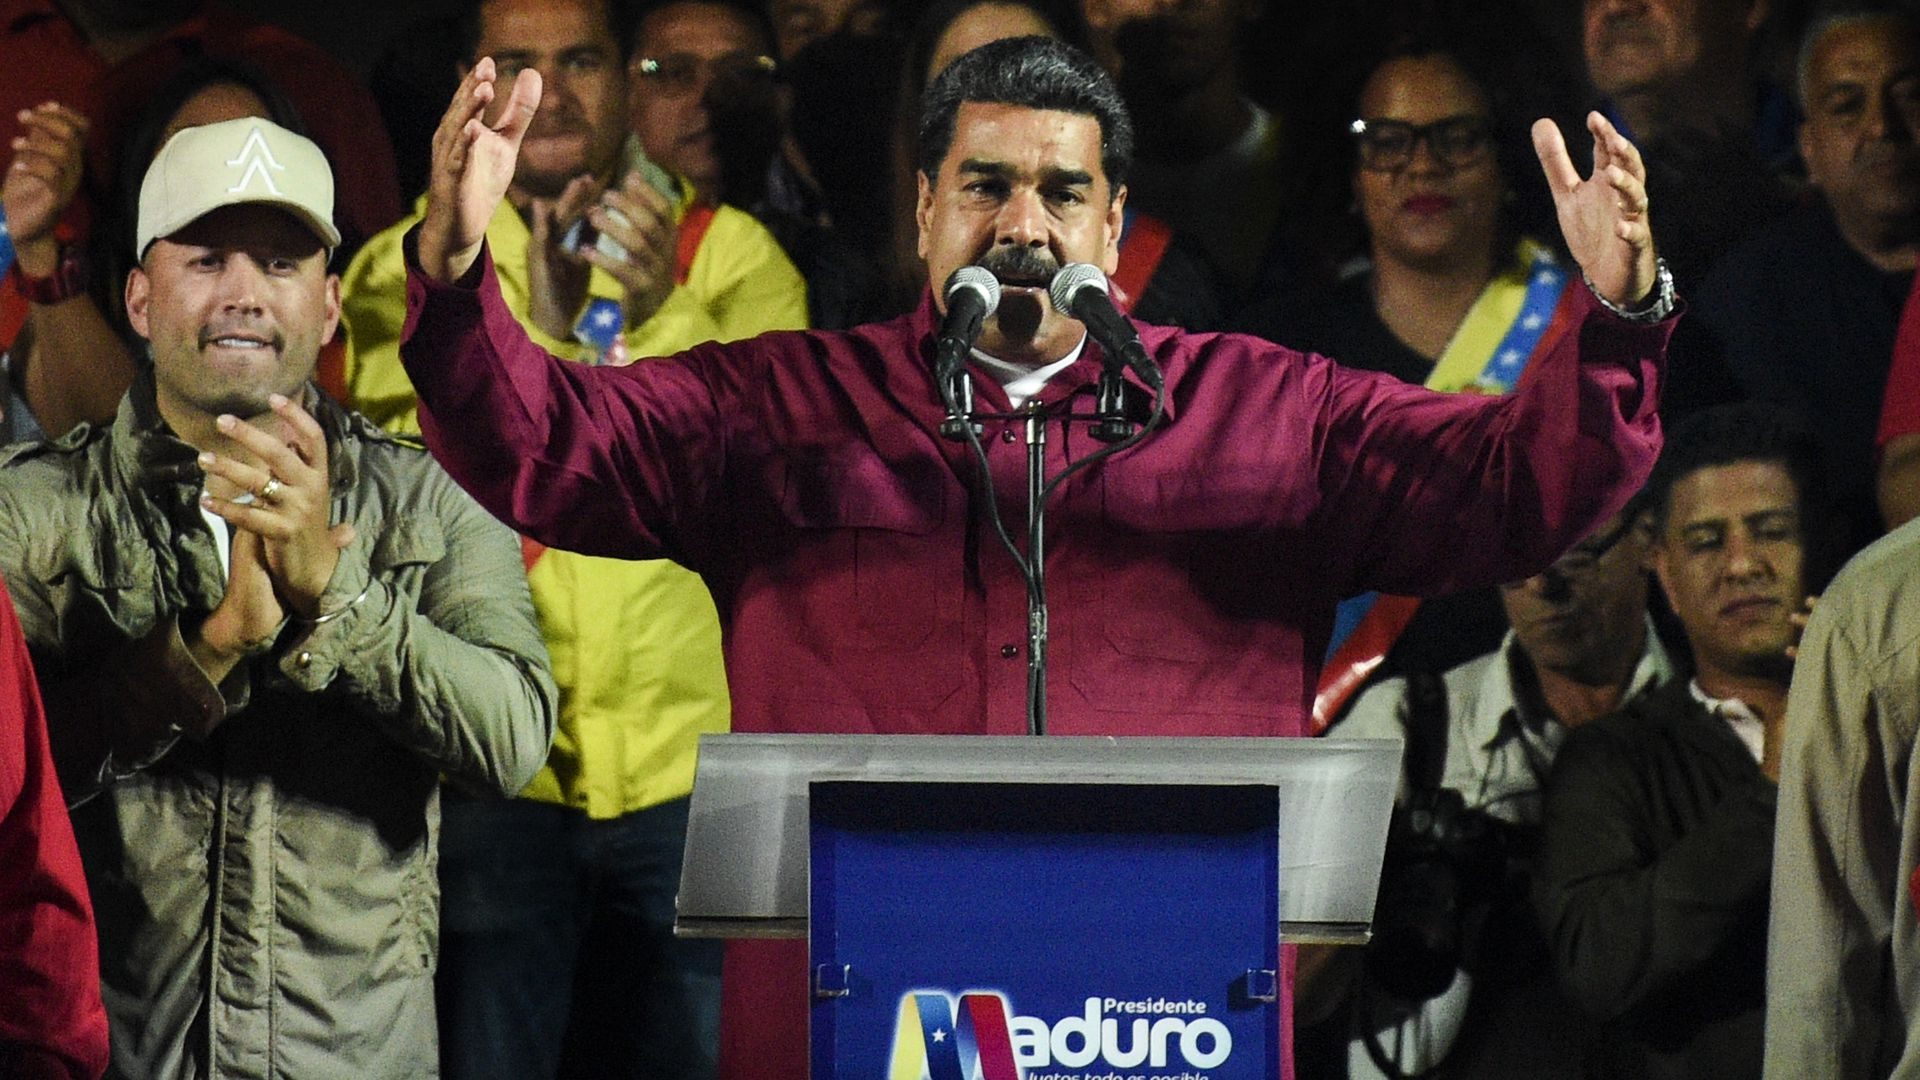 Venezuela's President, Nicolas Maduro, talks to his followers after announcing his reelection